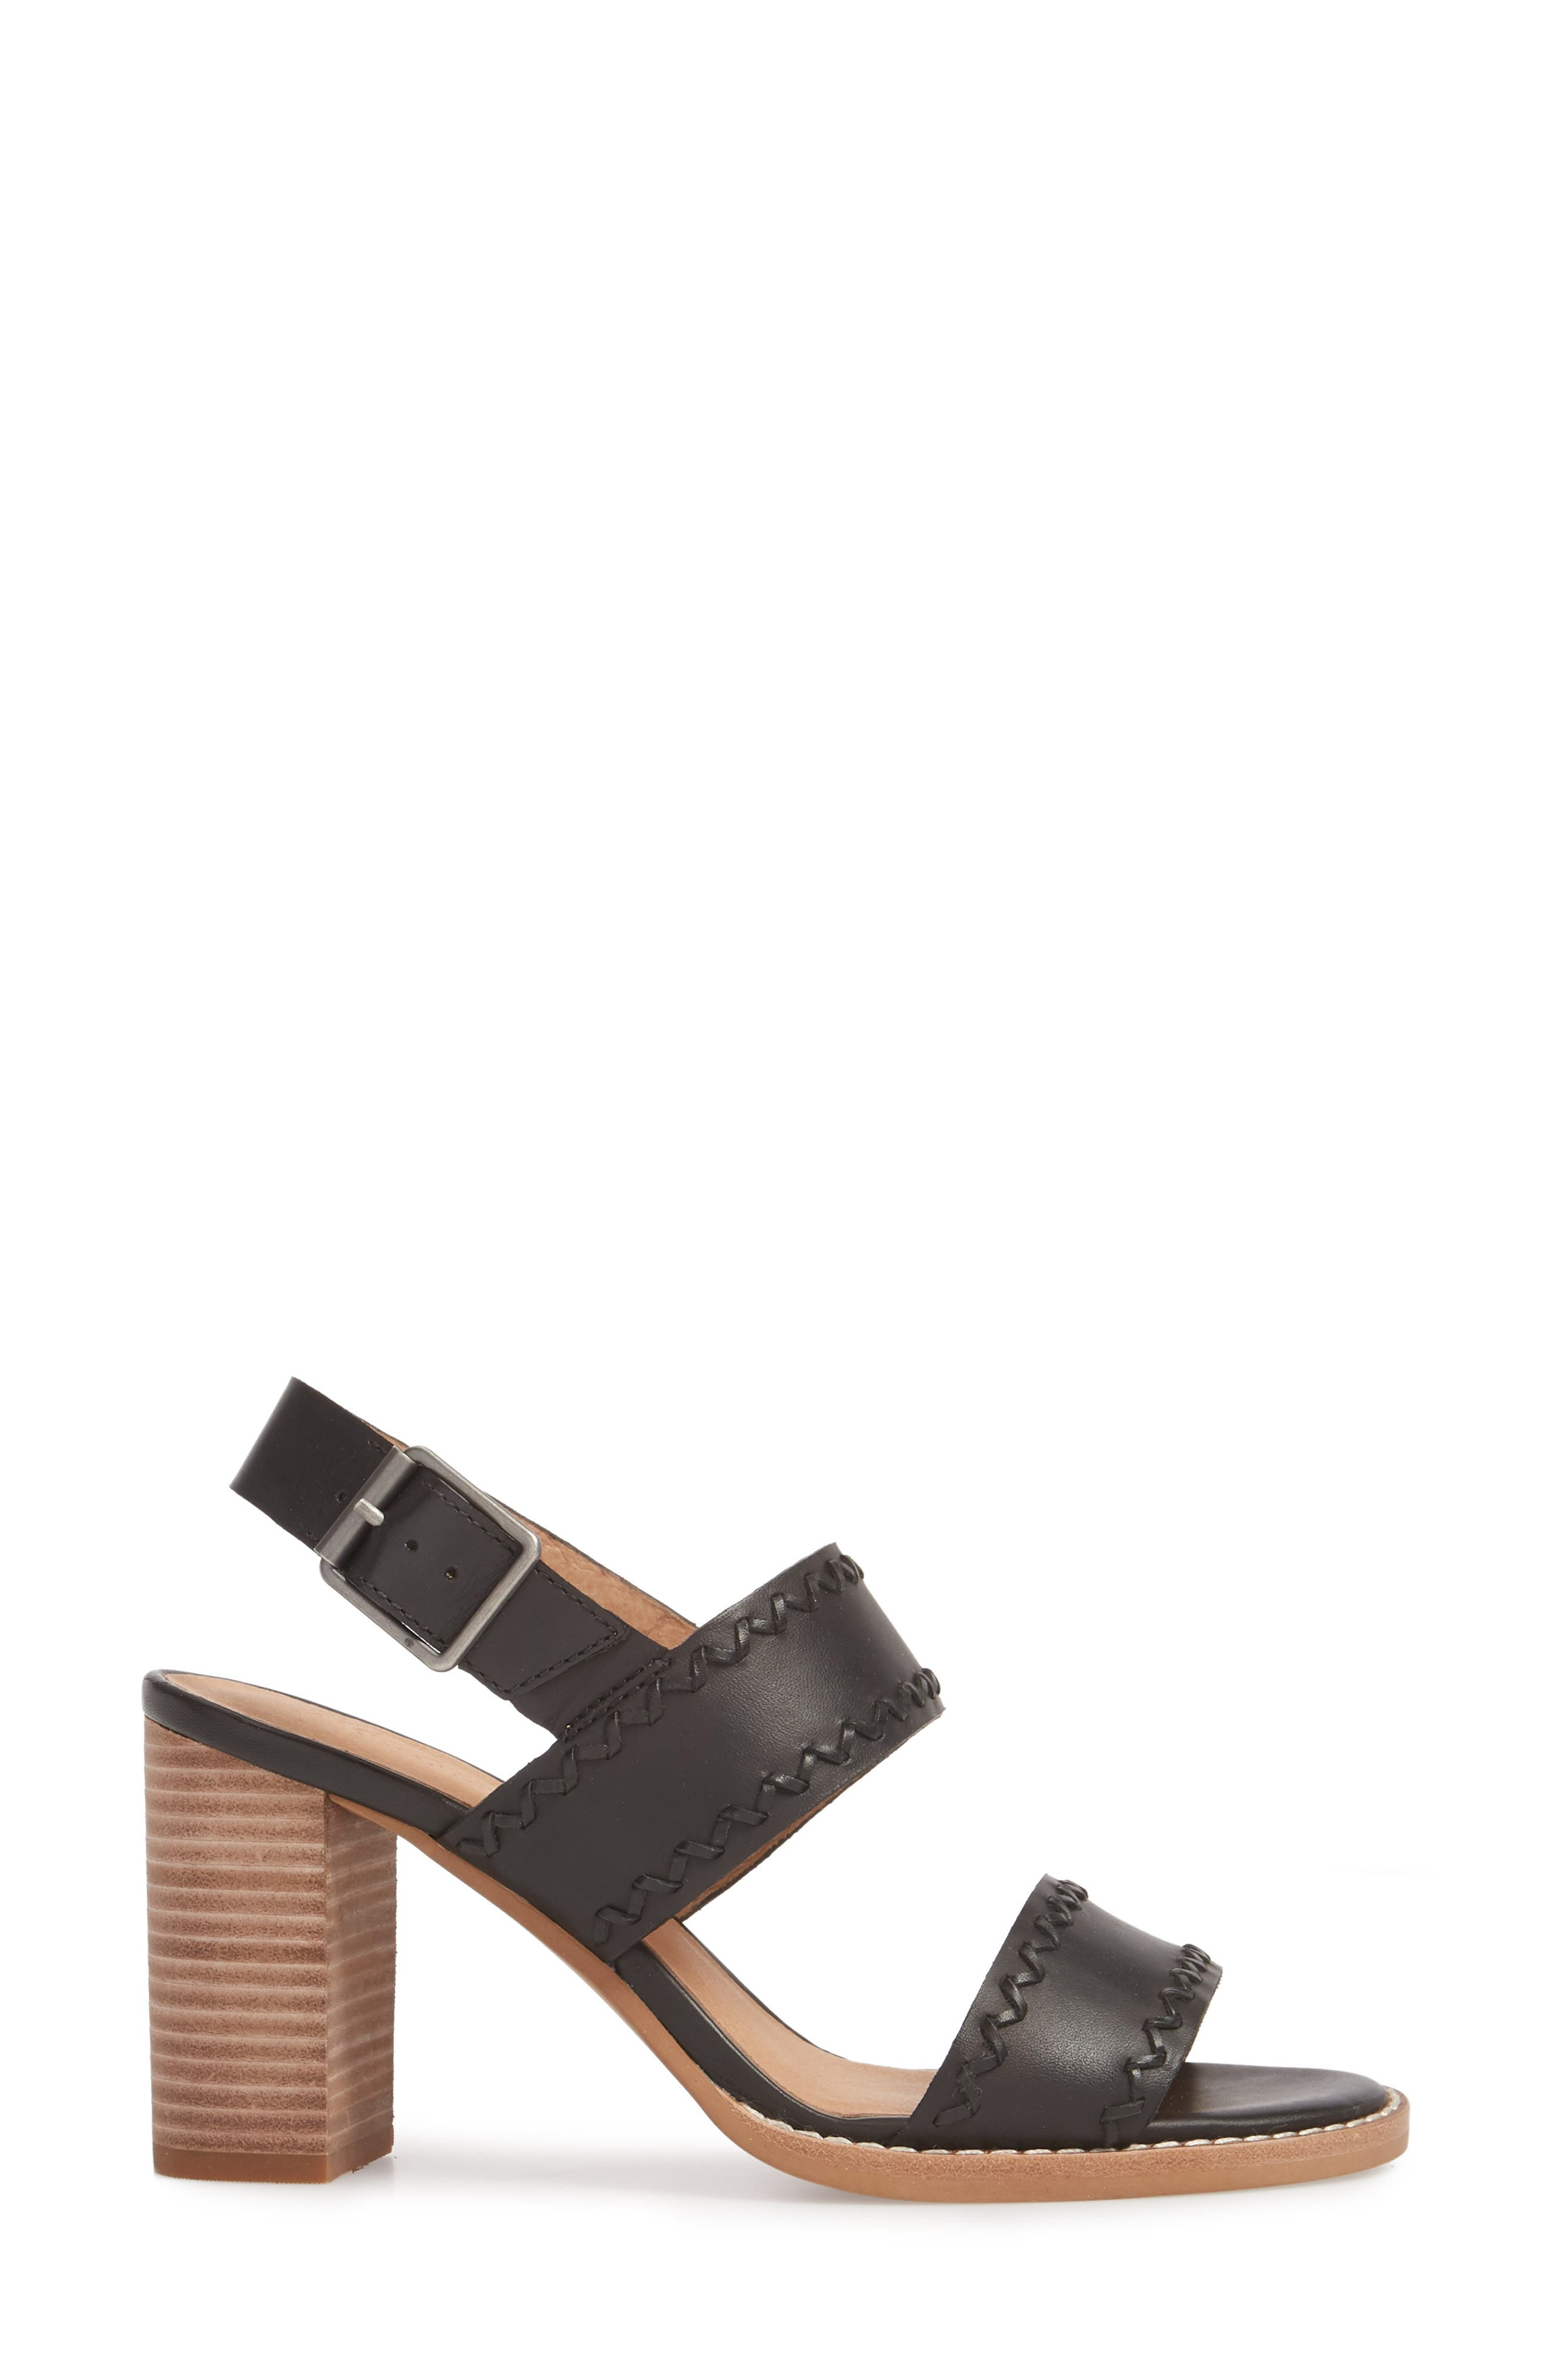 Giana Sandal,                             Alternate thumbnail 3, color,                             True Black Leather